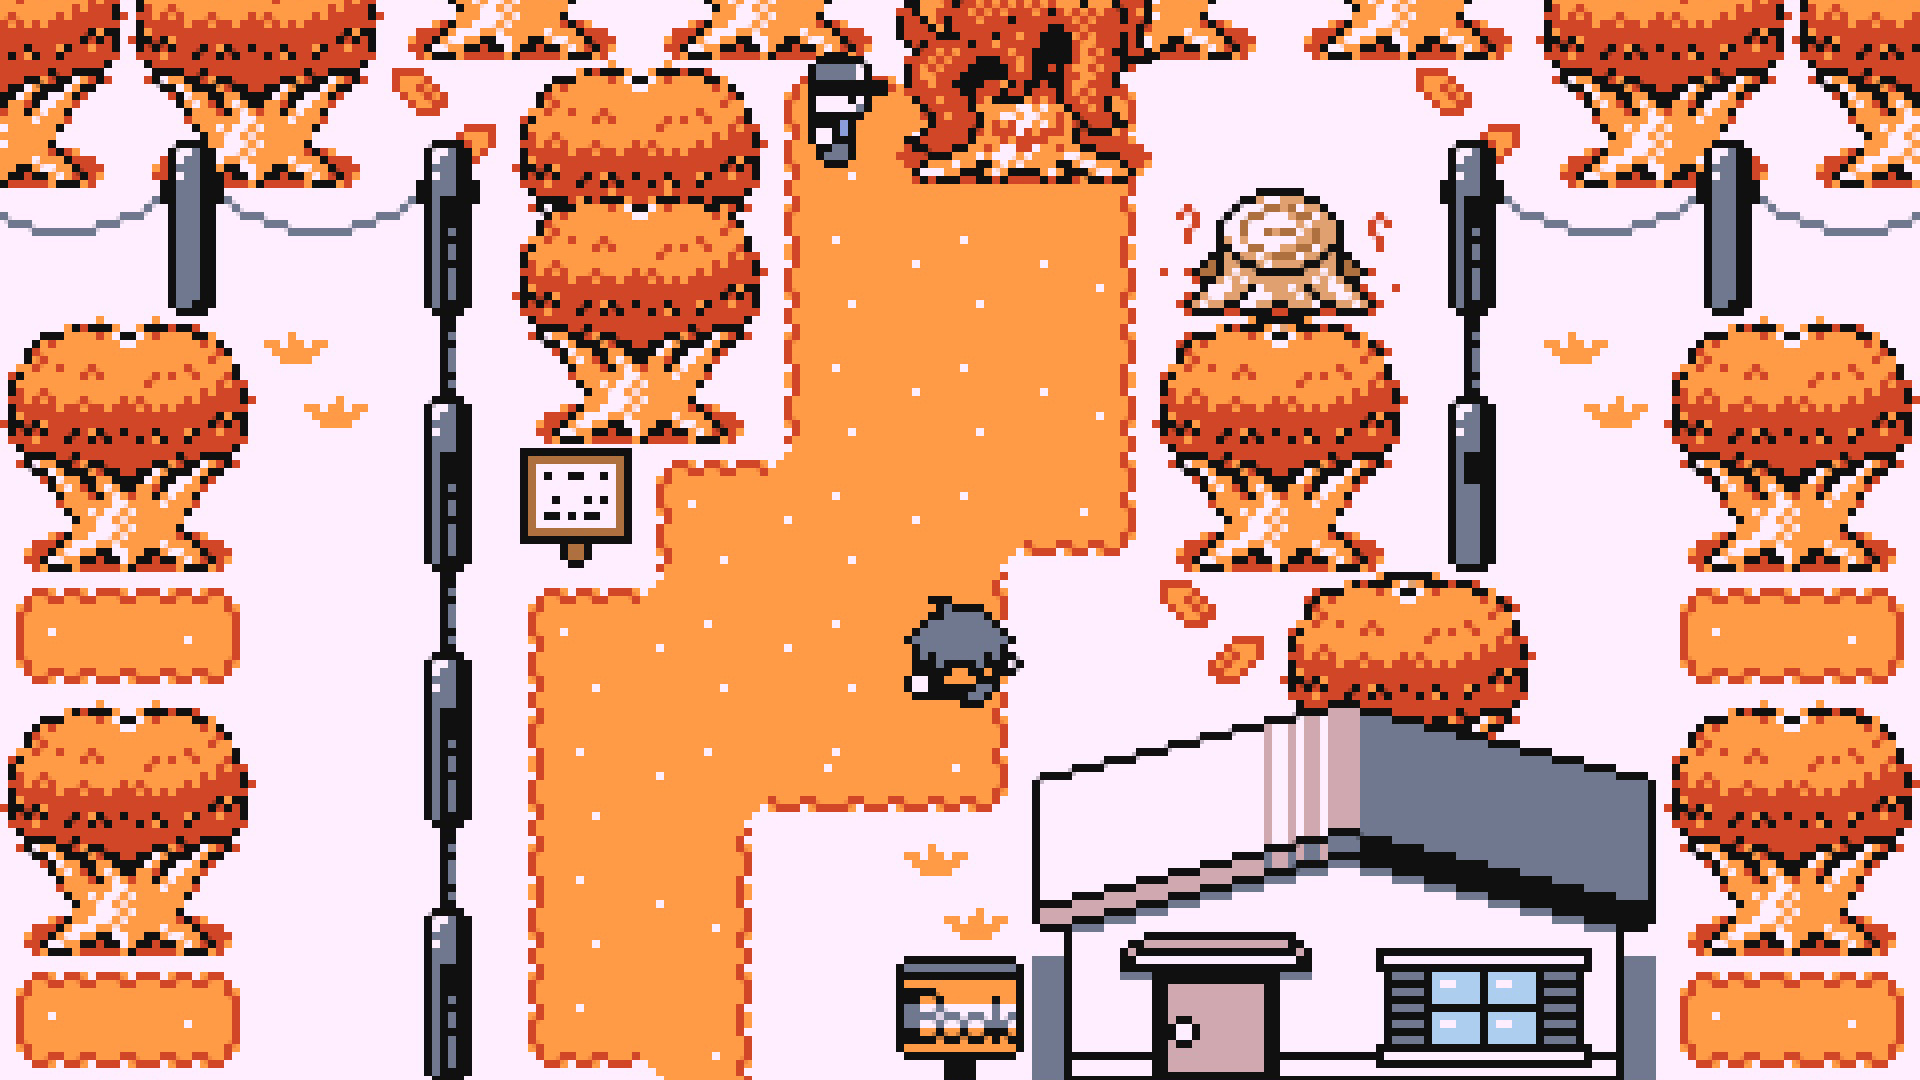 Relive your critter-collecting Game Boy glory days with Disc Creatures screenshot